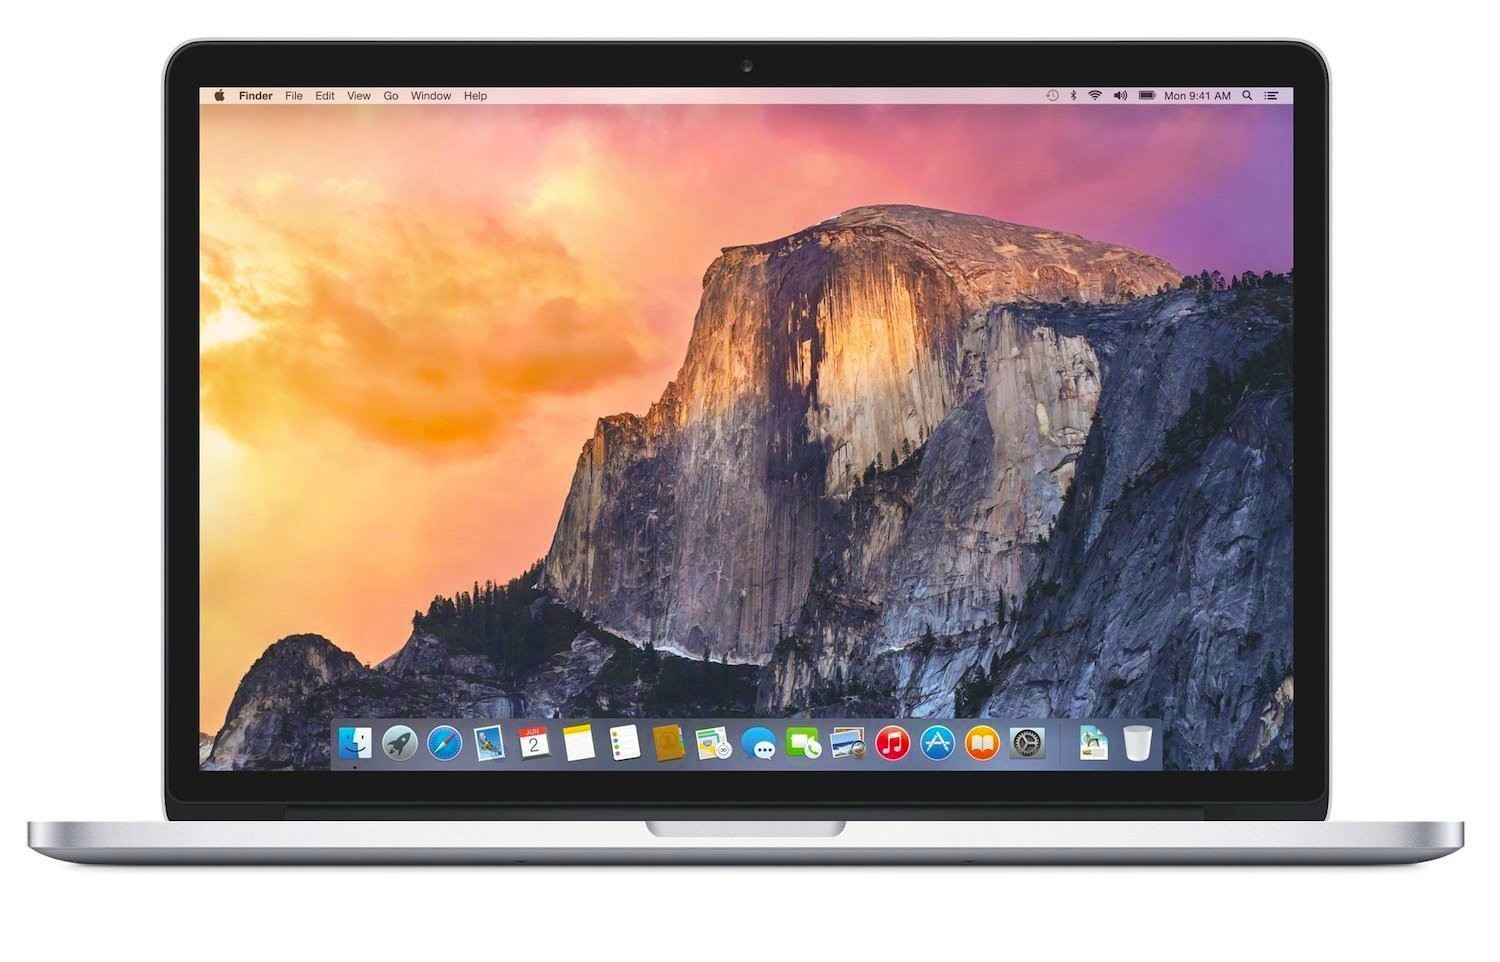 Refurbished laptops & desktops - Refurbished Apple Macbook Pro A1286 (Core I7 2ND Gen/4GB/500GB/Webcam/15.4''/Mac Os X El Capitan)